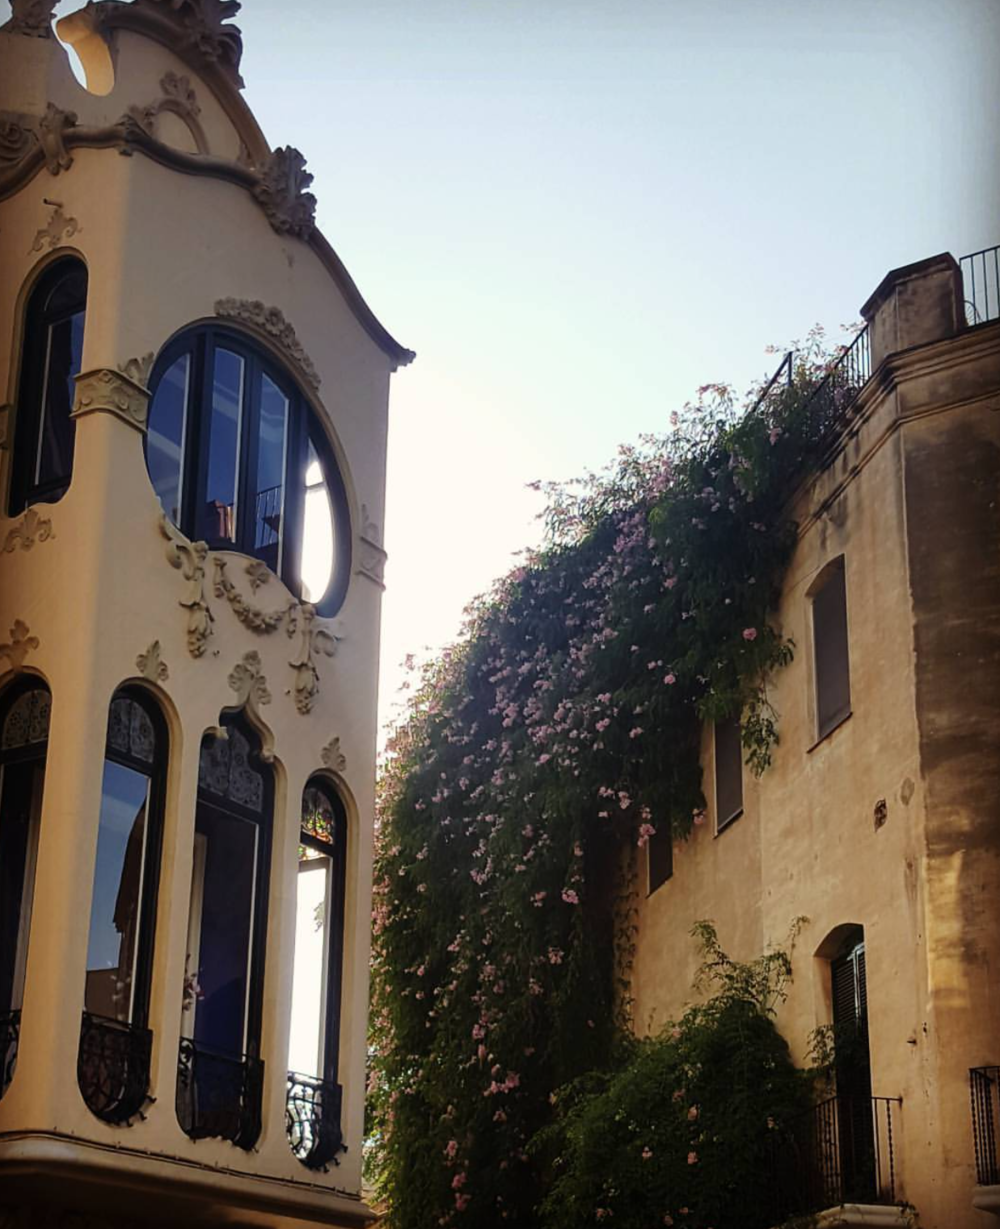 "I stopped in my steps as I saw the sun shine between some old ""Gaudi-esque"" houses, kissing the long flower-clad branches of a majestic 4-story tall tree as I bathed in the peace and quiet of a pedestrian road. I had fallen blindly in love."